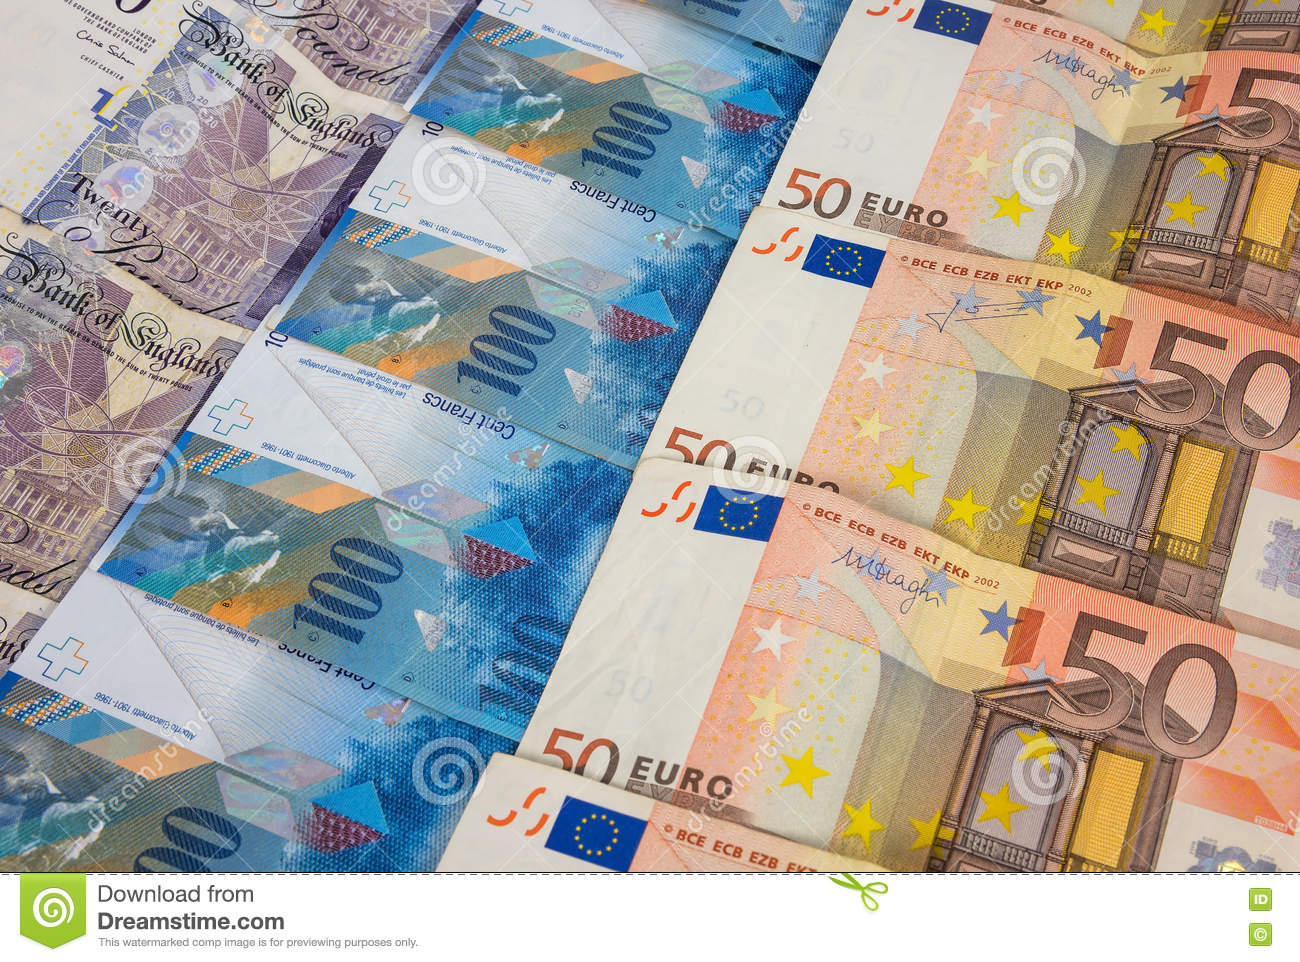 Gbp Euro And Chf Banknotes Stock Photo Image Of Currency 82311510